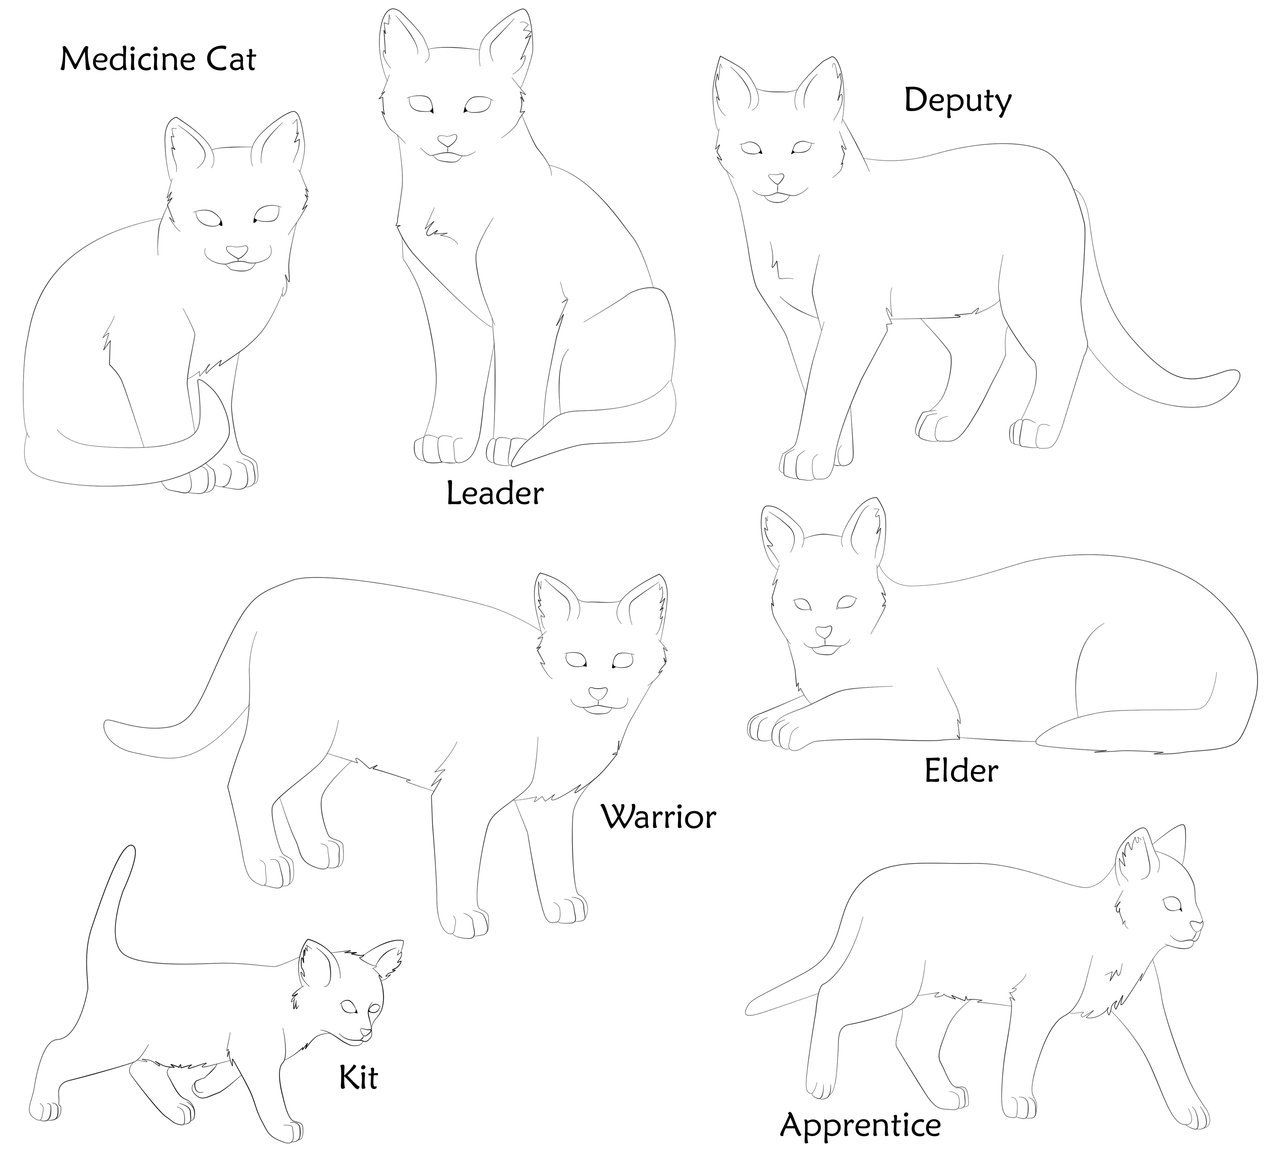 Coloring Pictures Of Warrior Cats - Coloring